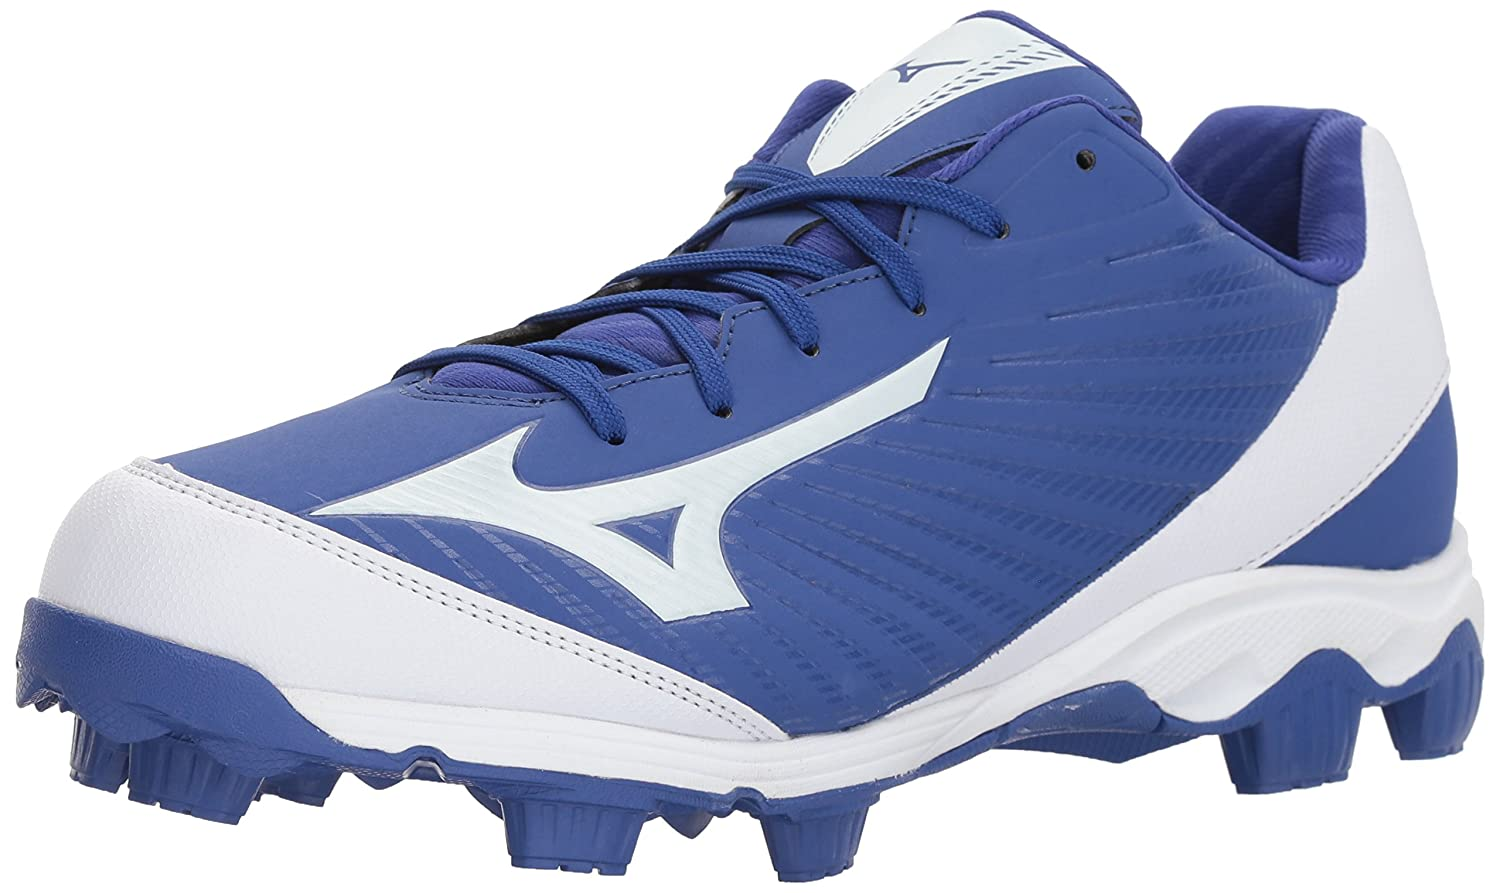 Mizuno (MIZD9) メンズ 9-Spike Advanced Franchise 9 Molded Baseball Cleat Low B071ZZDN1T 9 D US|ロイヤル/ホワイト ロイヤル/ホワイト 9 D US